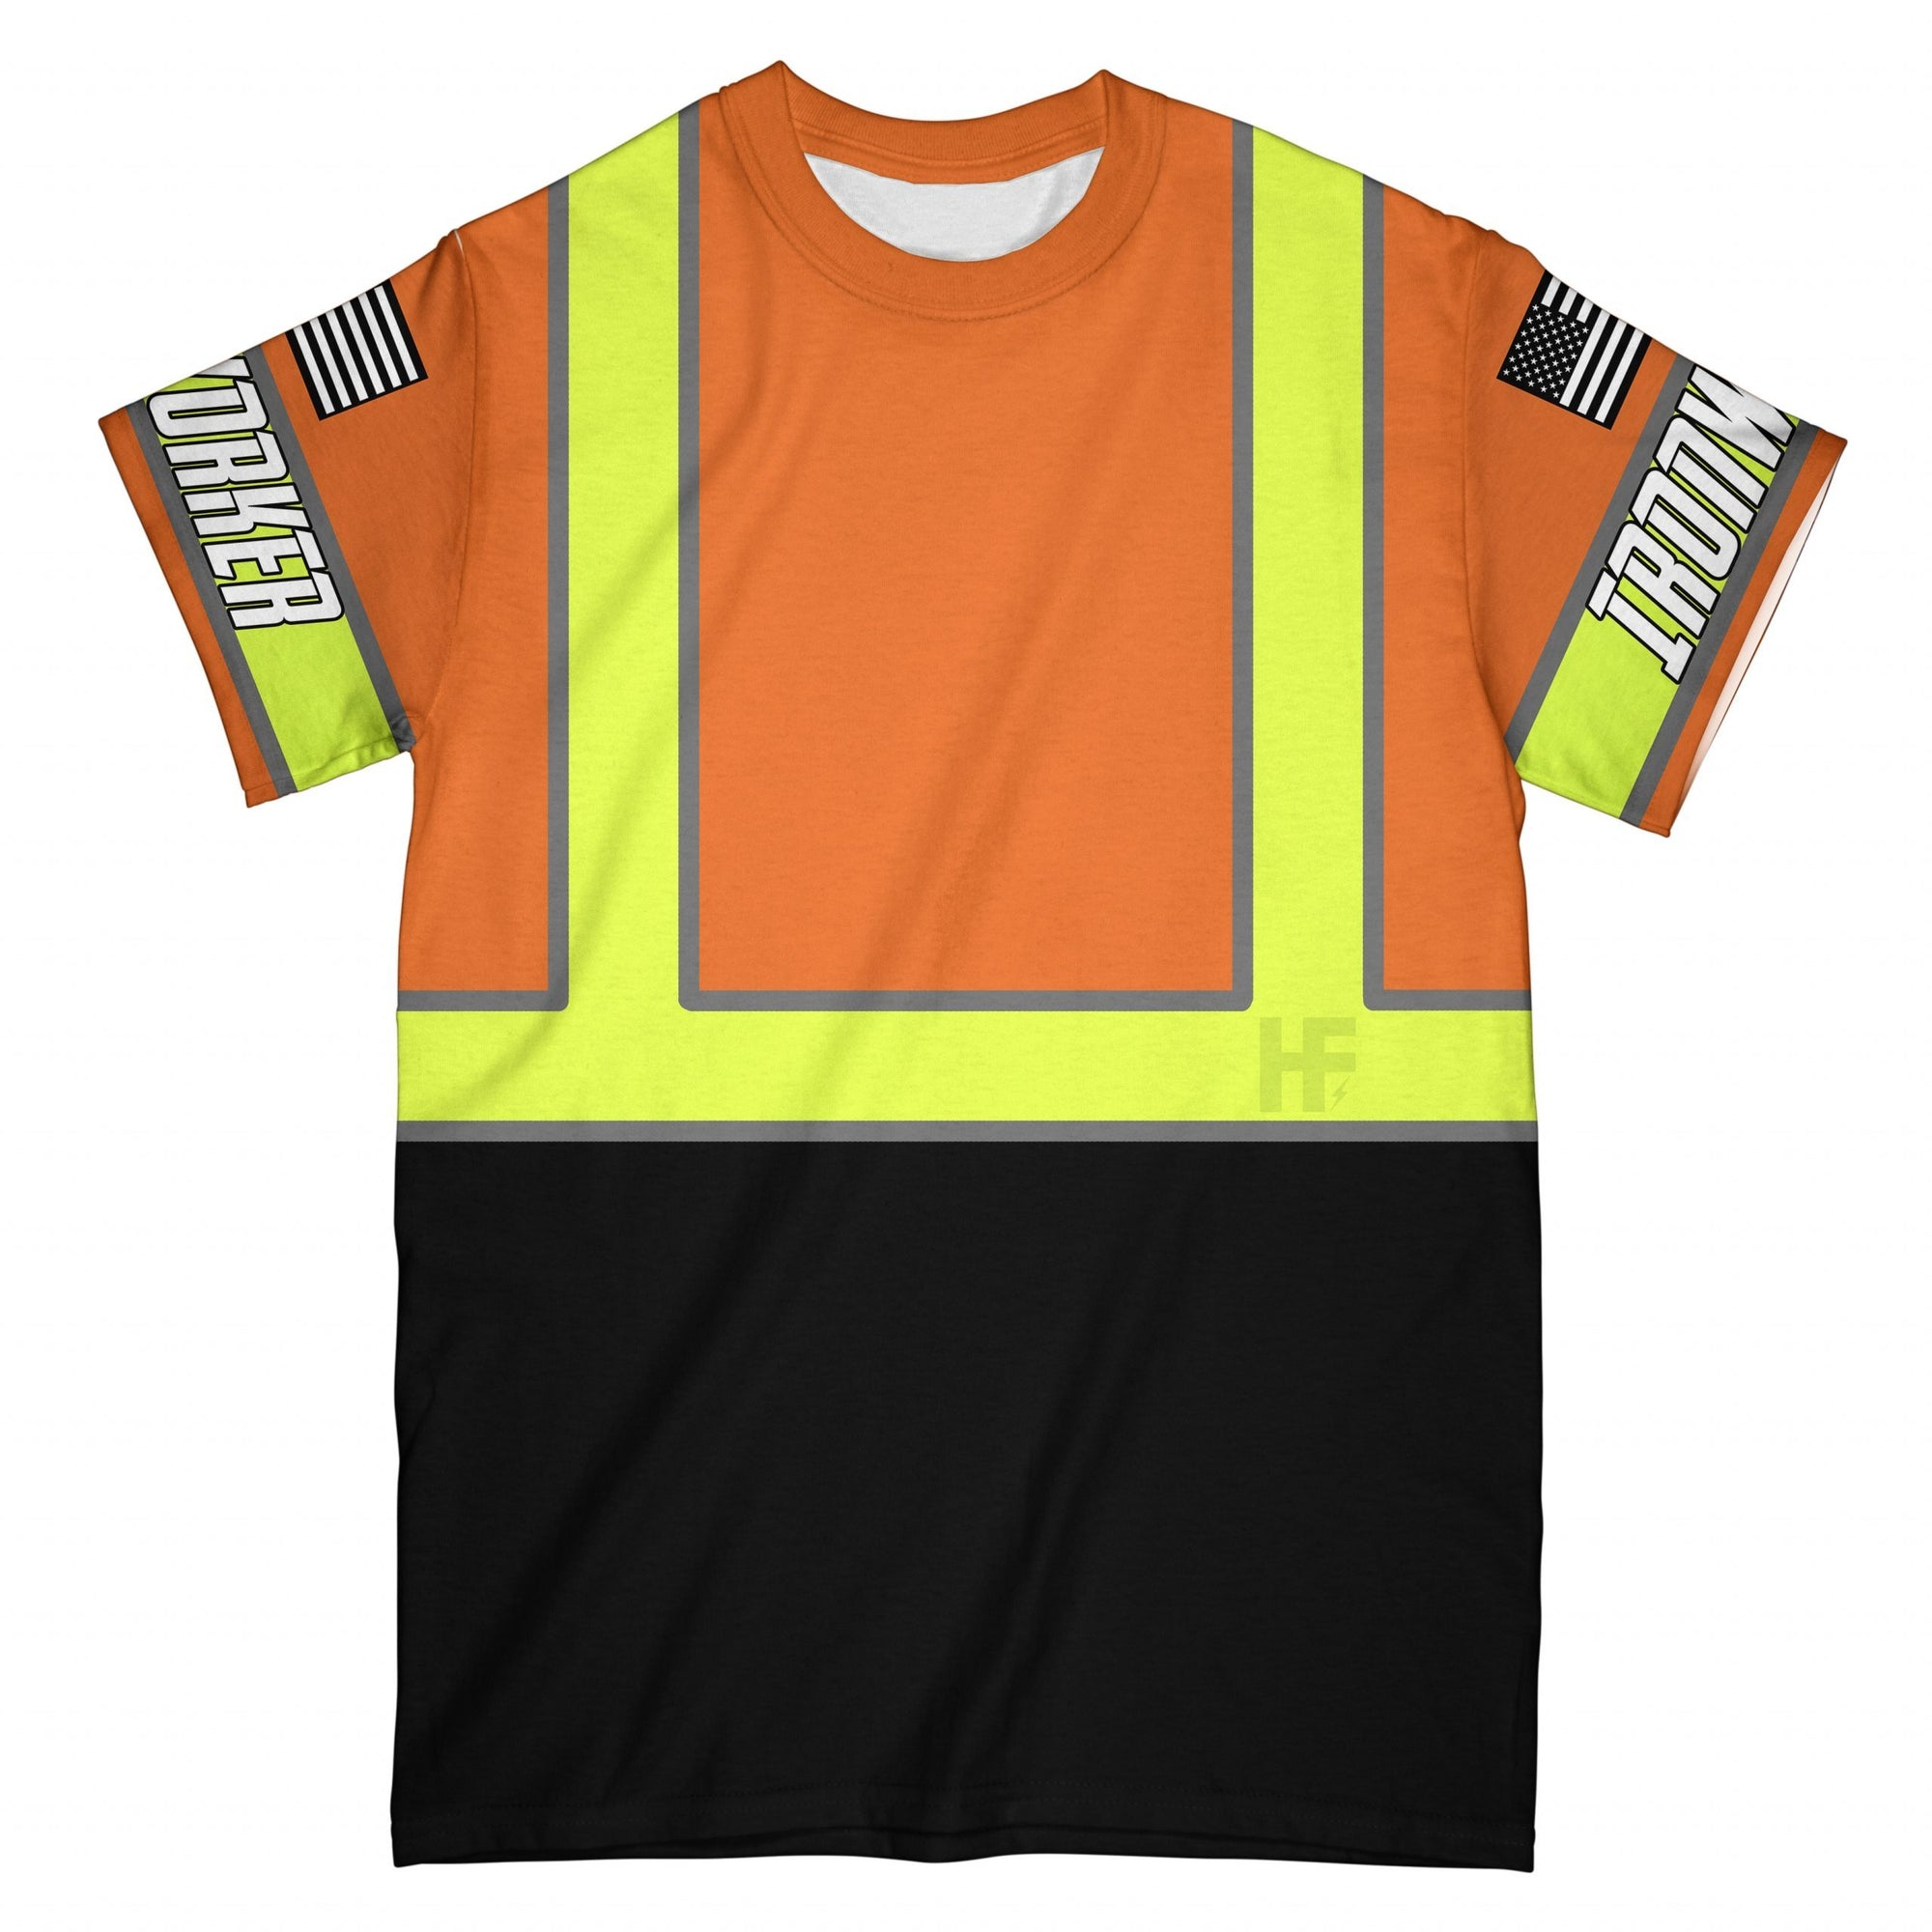 Ironworker v3 EZ15 2608 All Over T-Shirt